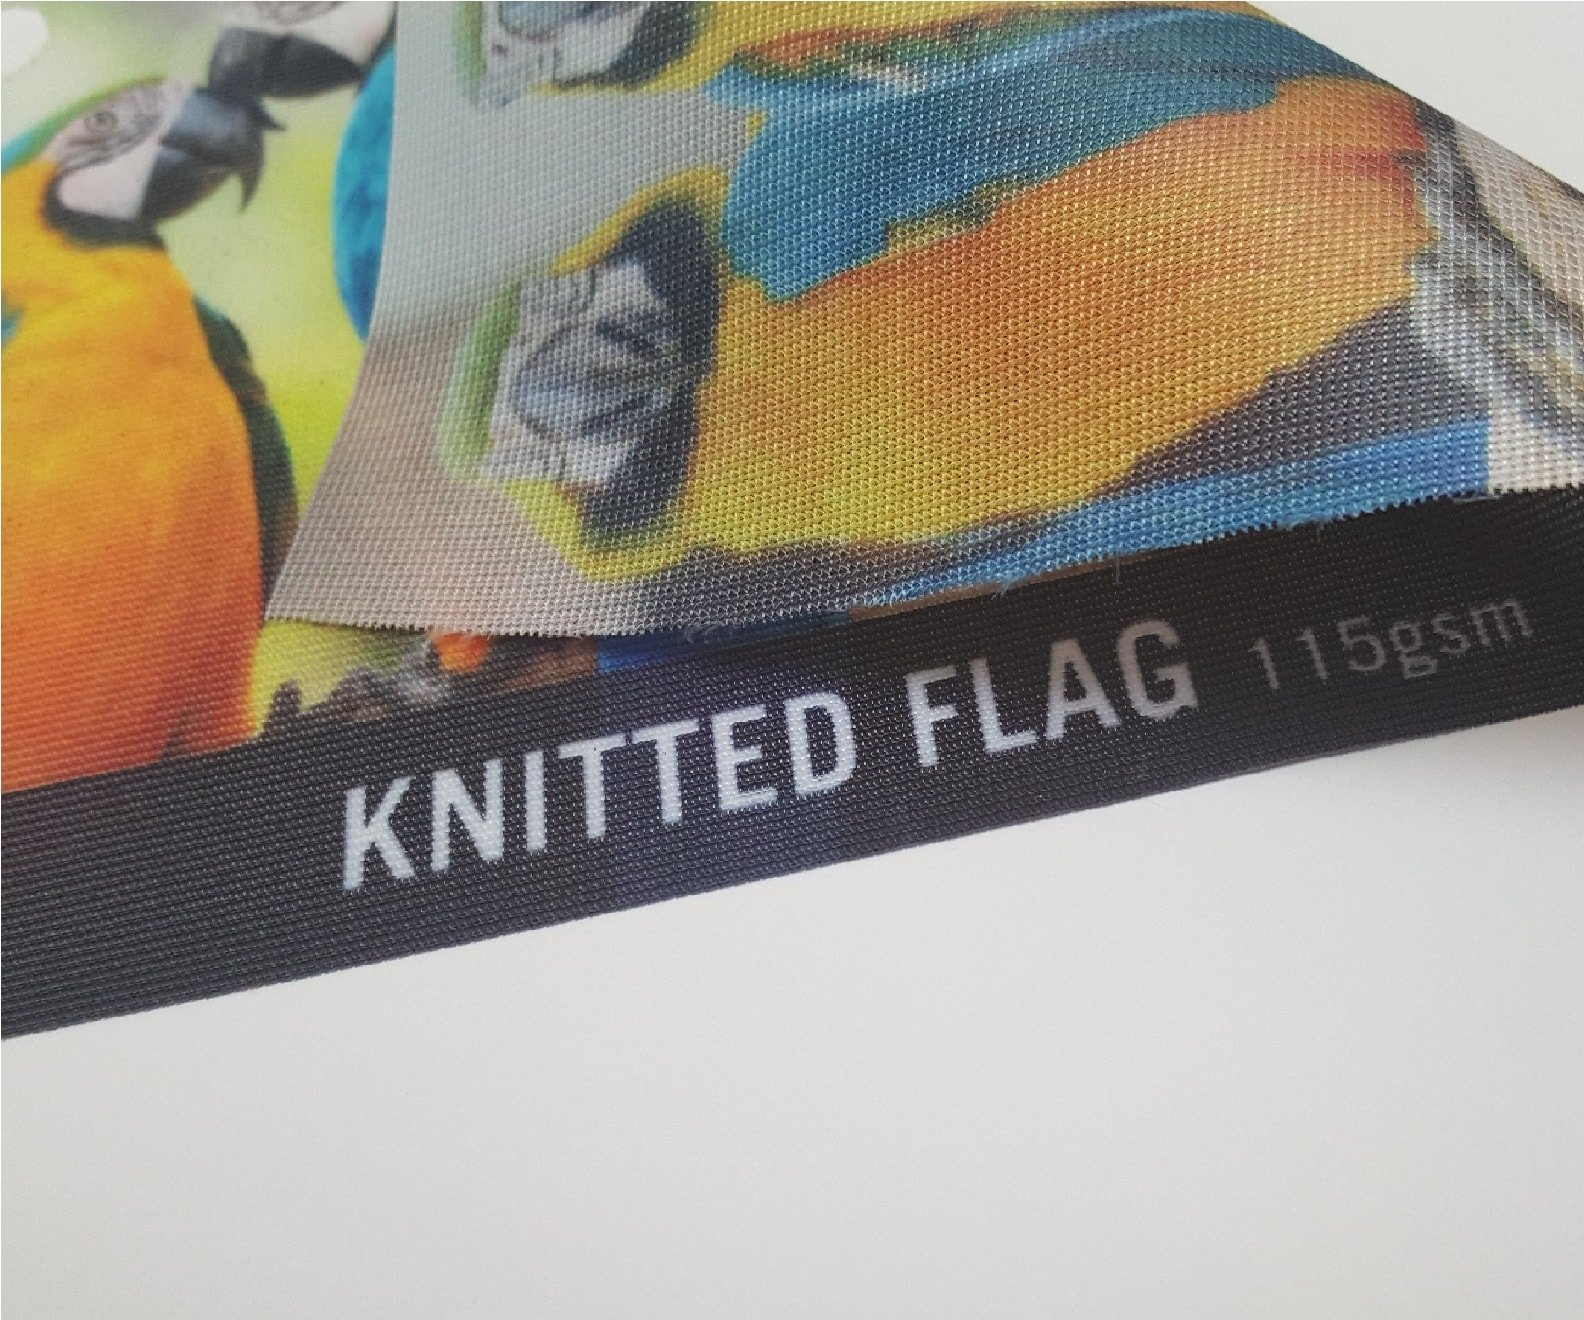 Knitted Flag Printing UK, Next Day Delivery - www.ontimeprint.co.uk